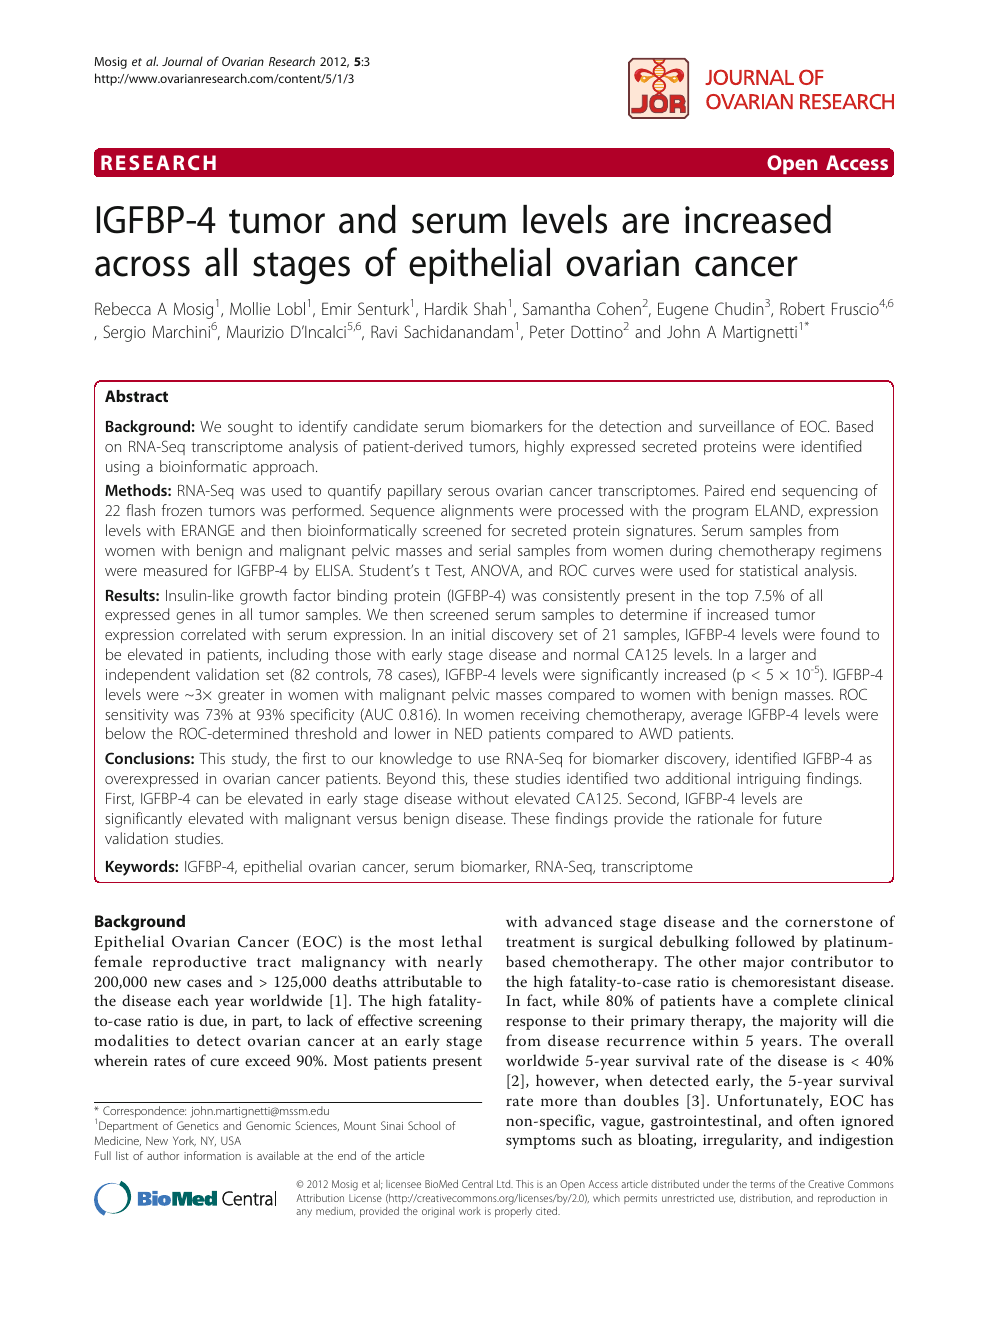 Igfbp 4 Tumor And Serum Levels Are Increased Across All Stages Of Epithelial Ovarian Cancer Topic Of Research Paper In Clinical Medicine Download Scholarly Article Pdf And Read For Free On Cyberleninka